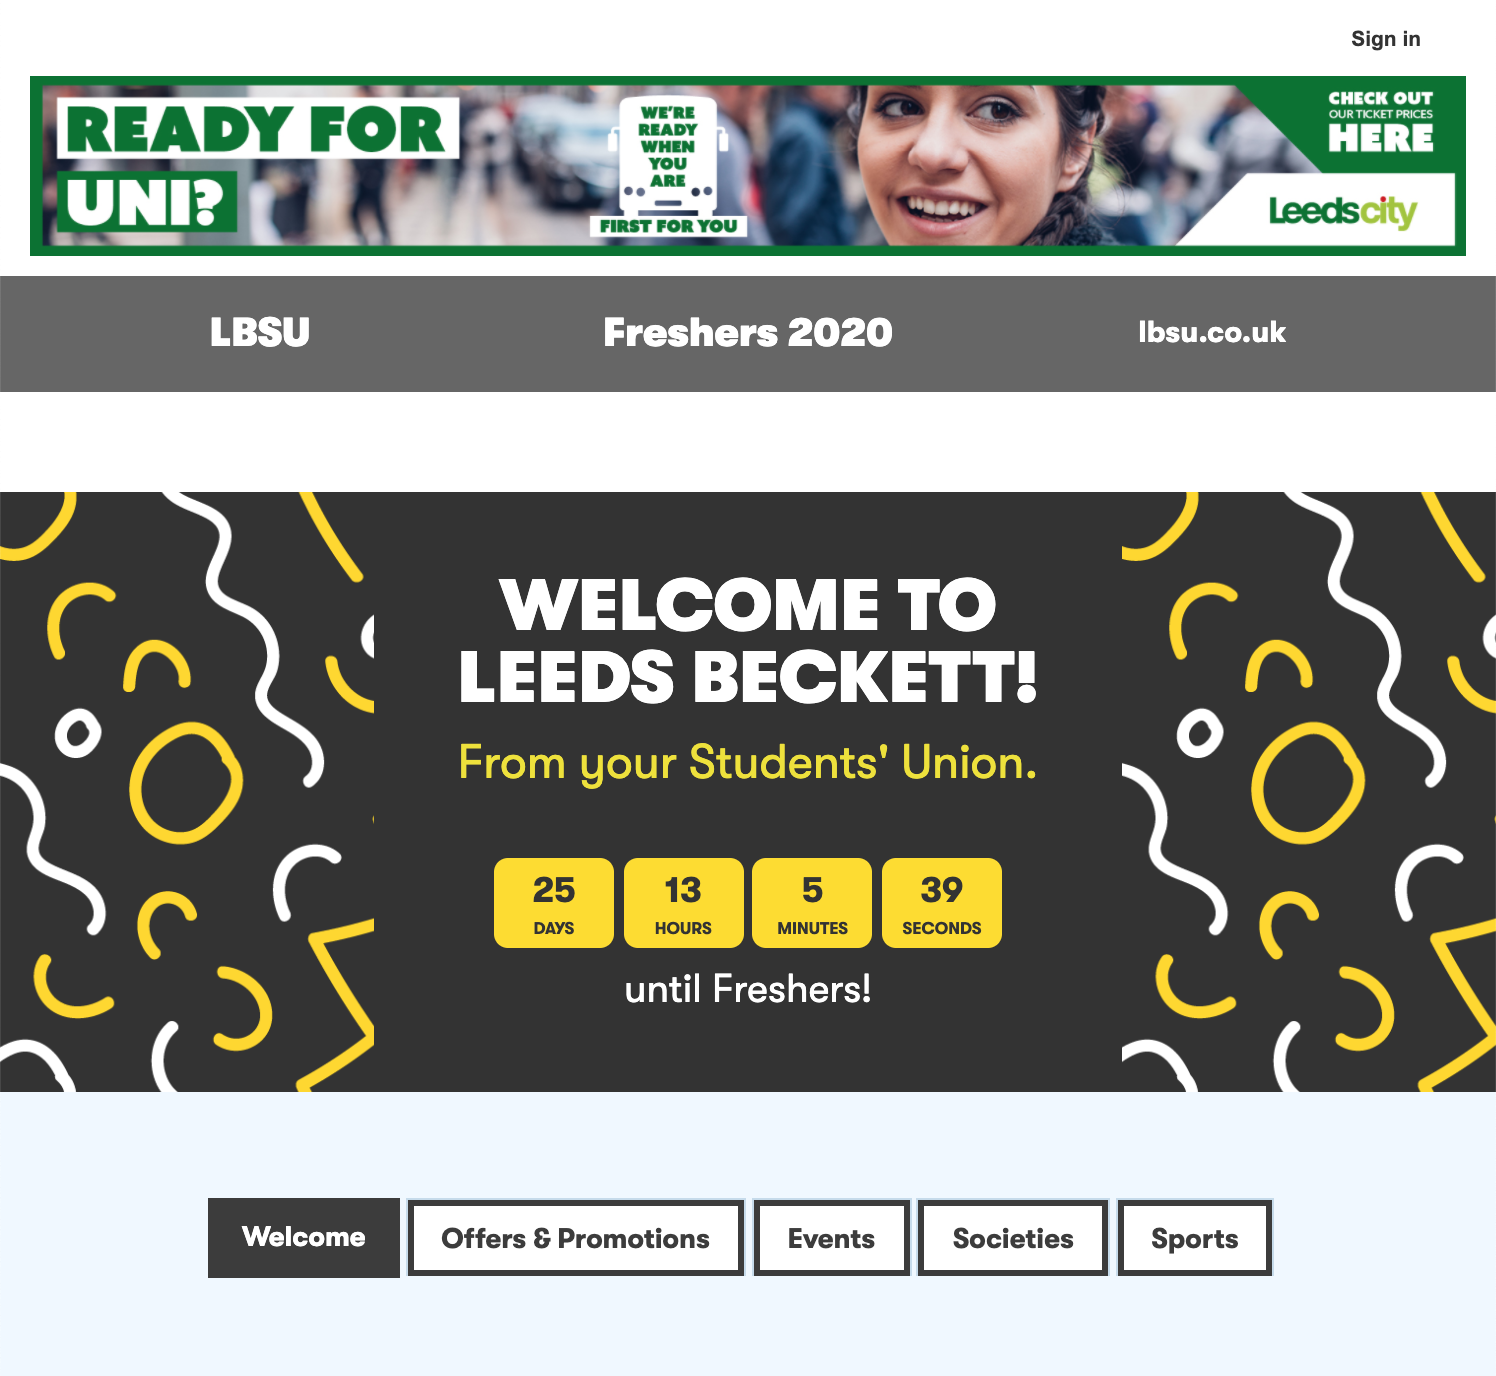 Welcome to Leeds Beckett - From your Students' Union